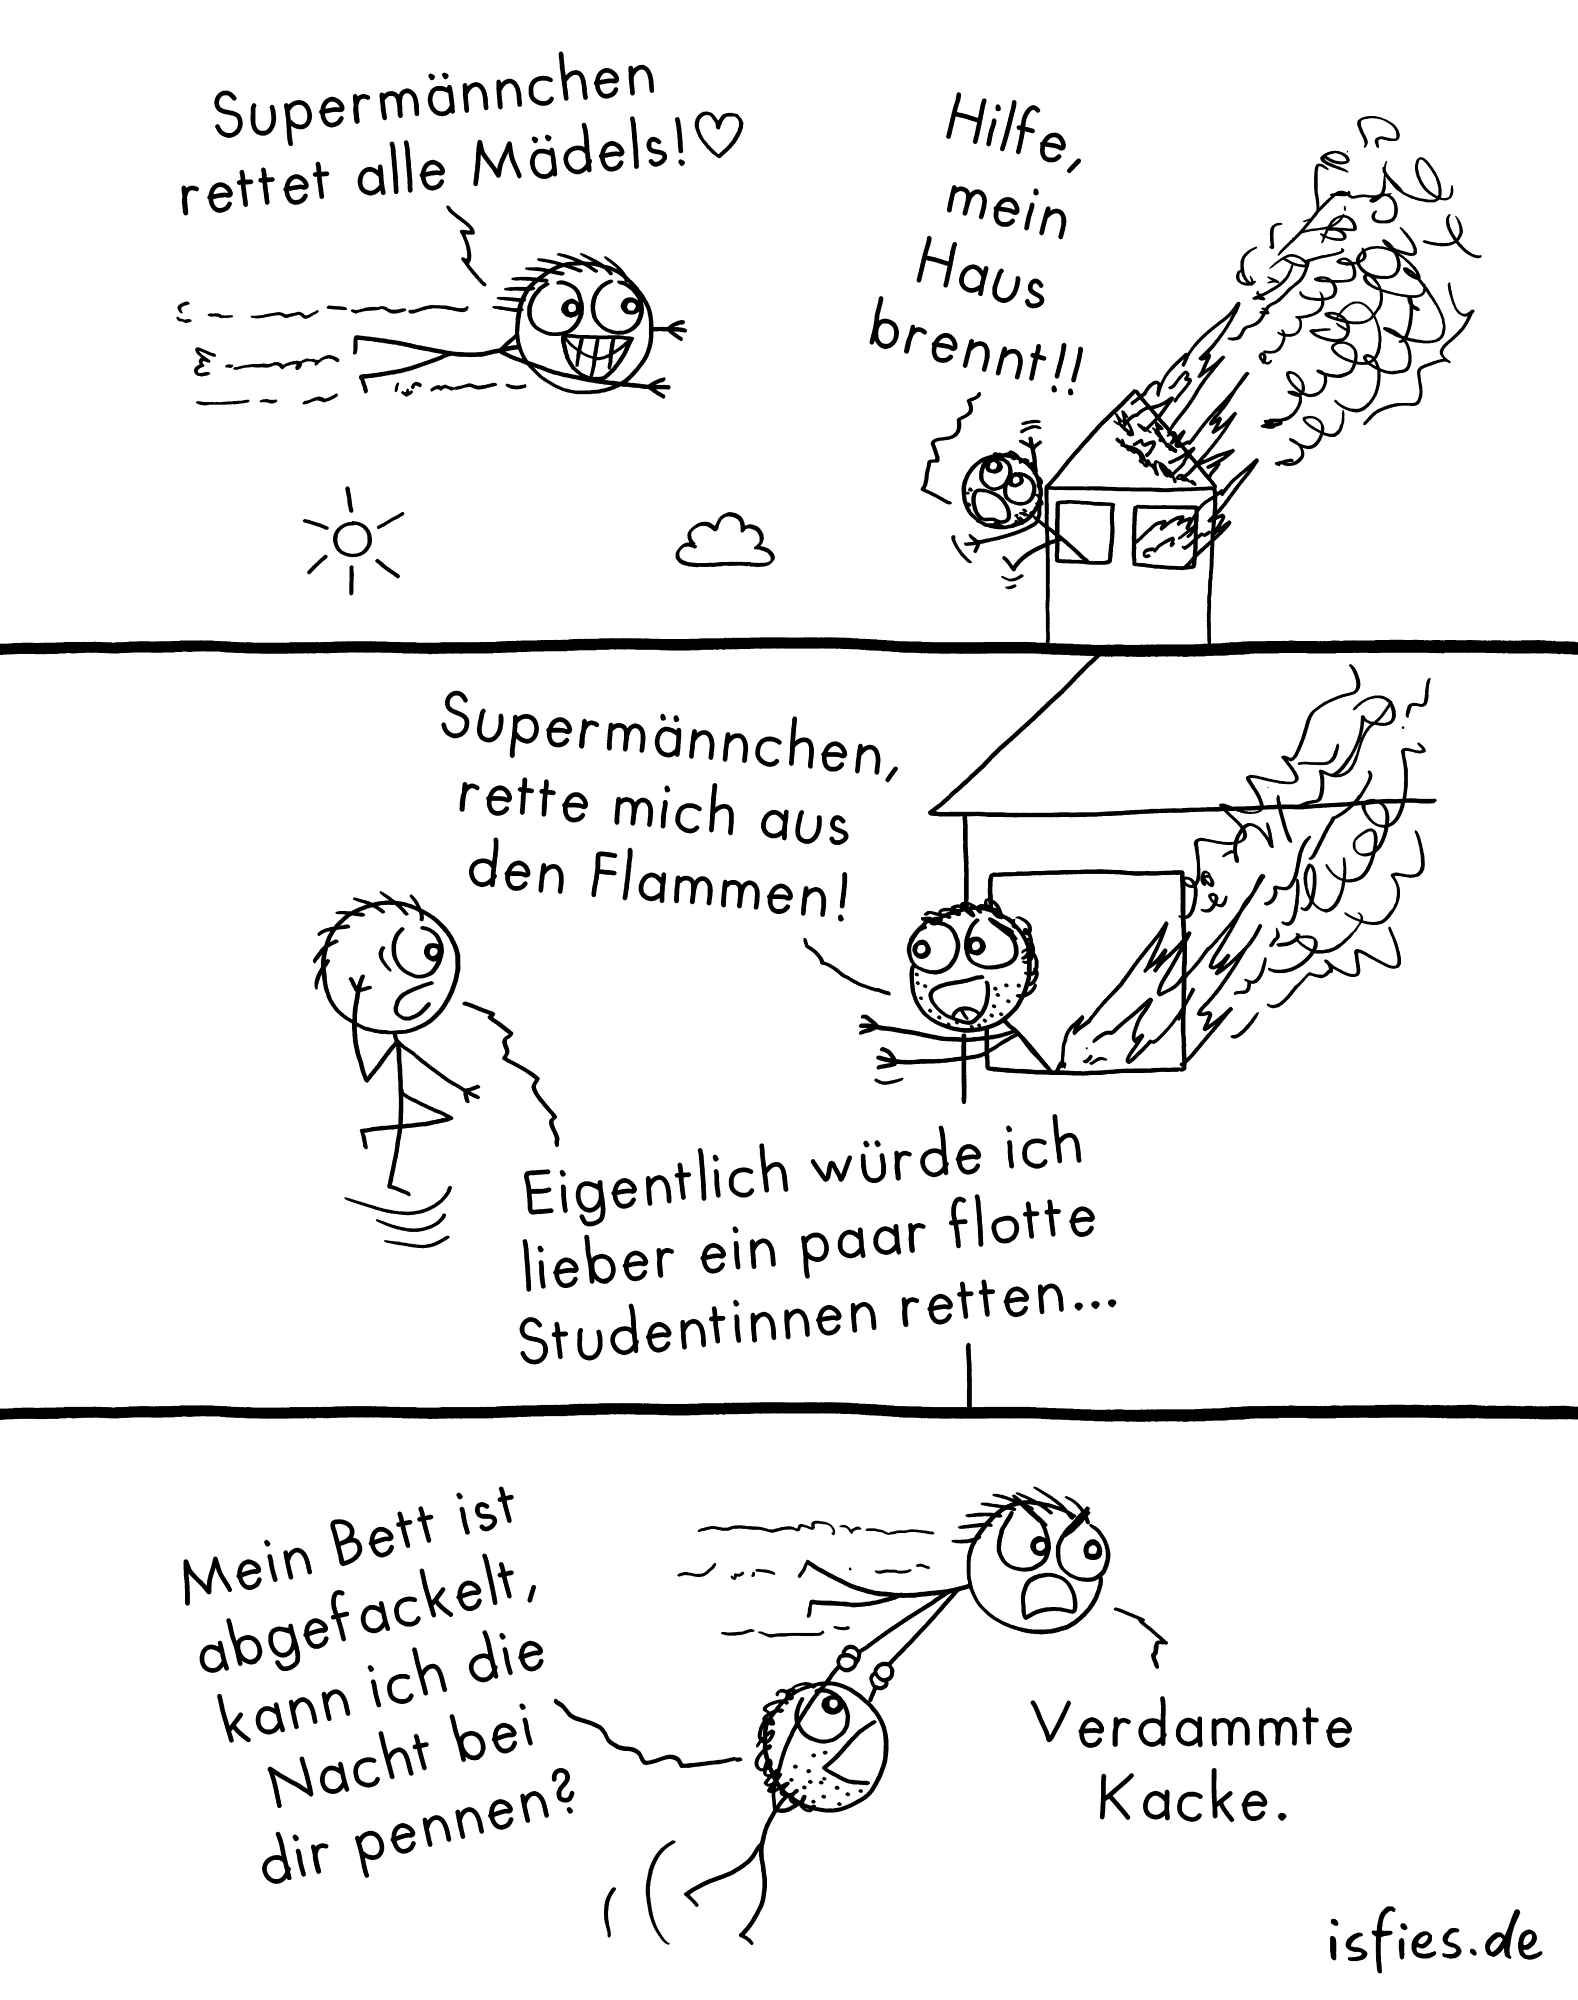 Supermännchen isfies Comic